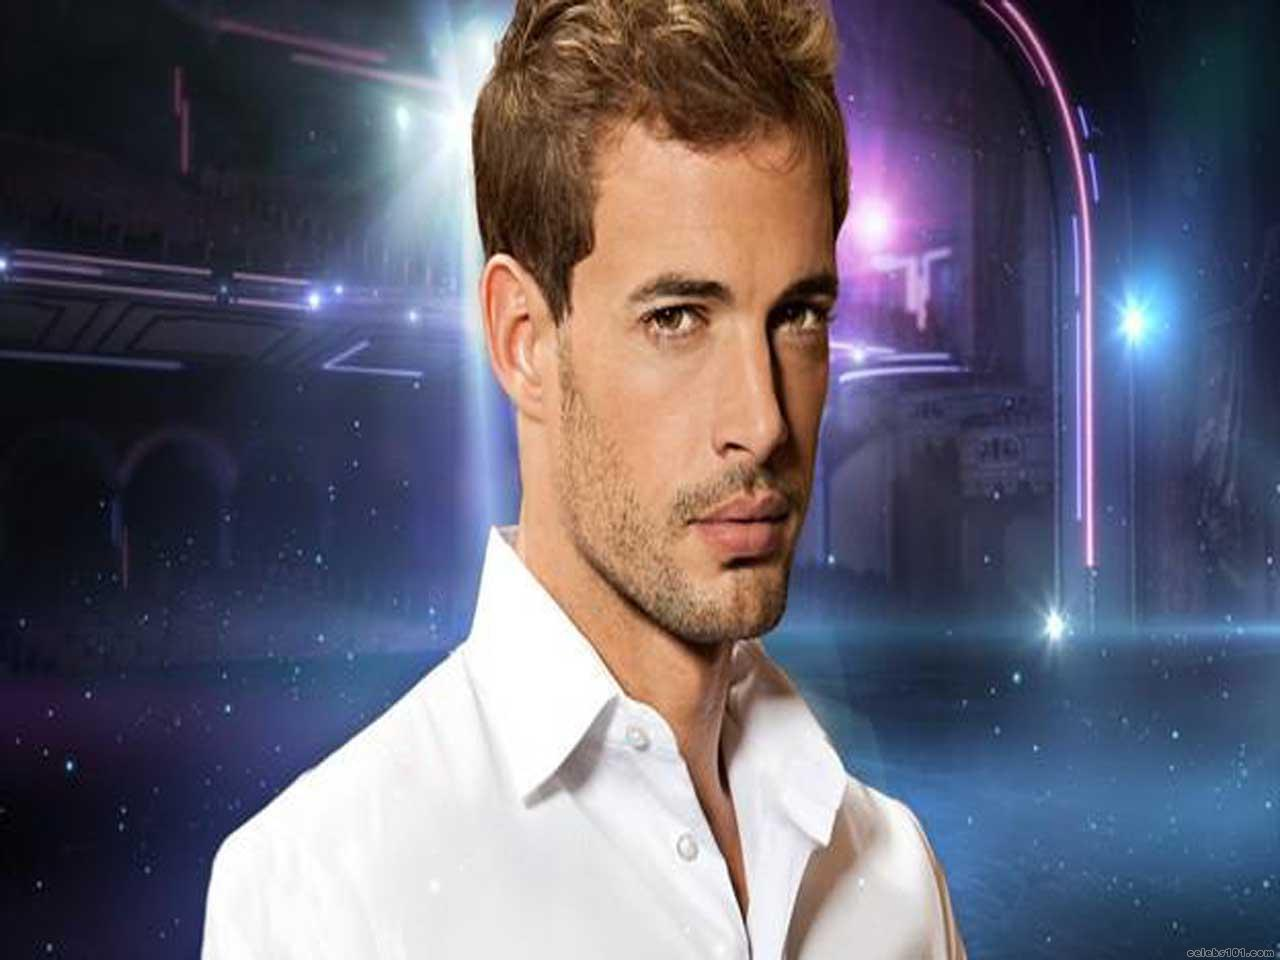 William Levy High quality wallpaper size 1280x960 of William Levy 1280x960